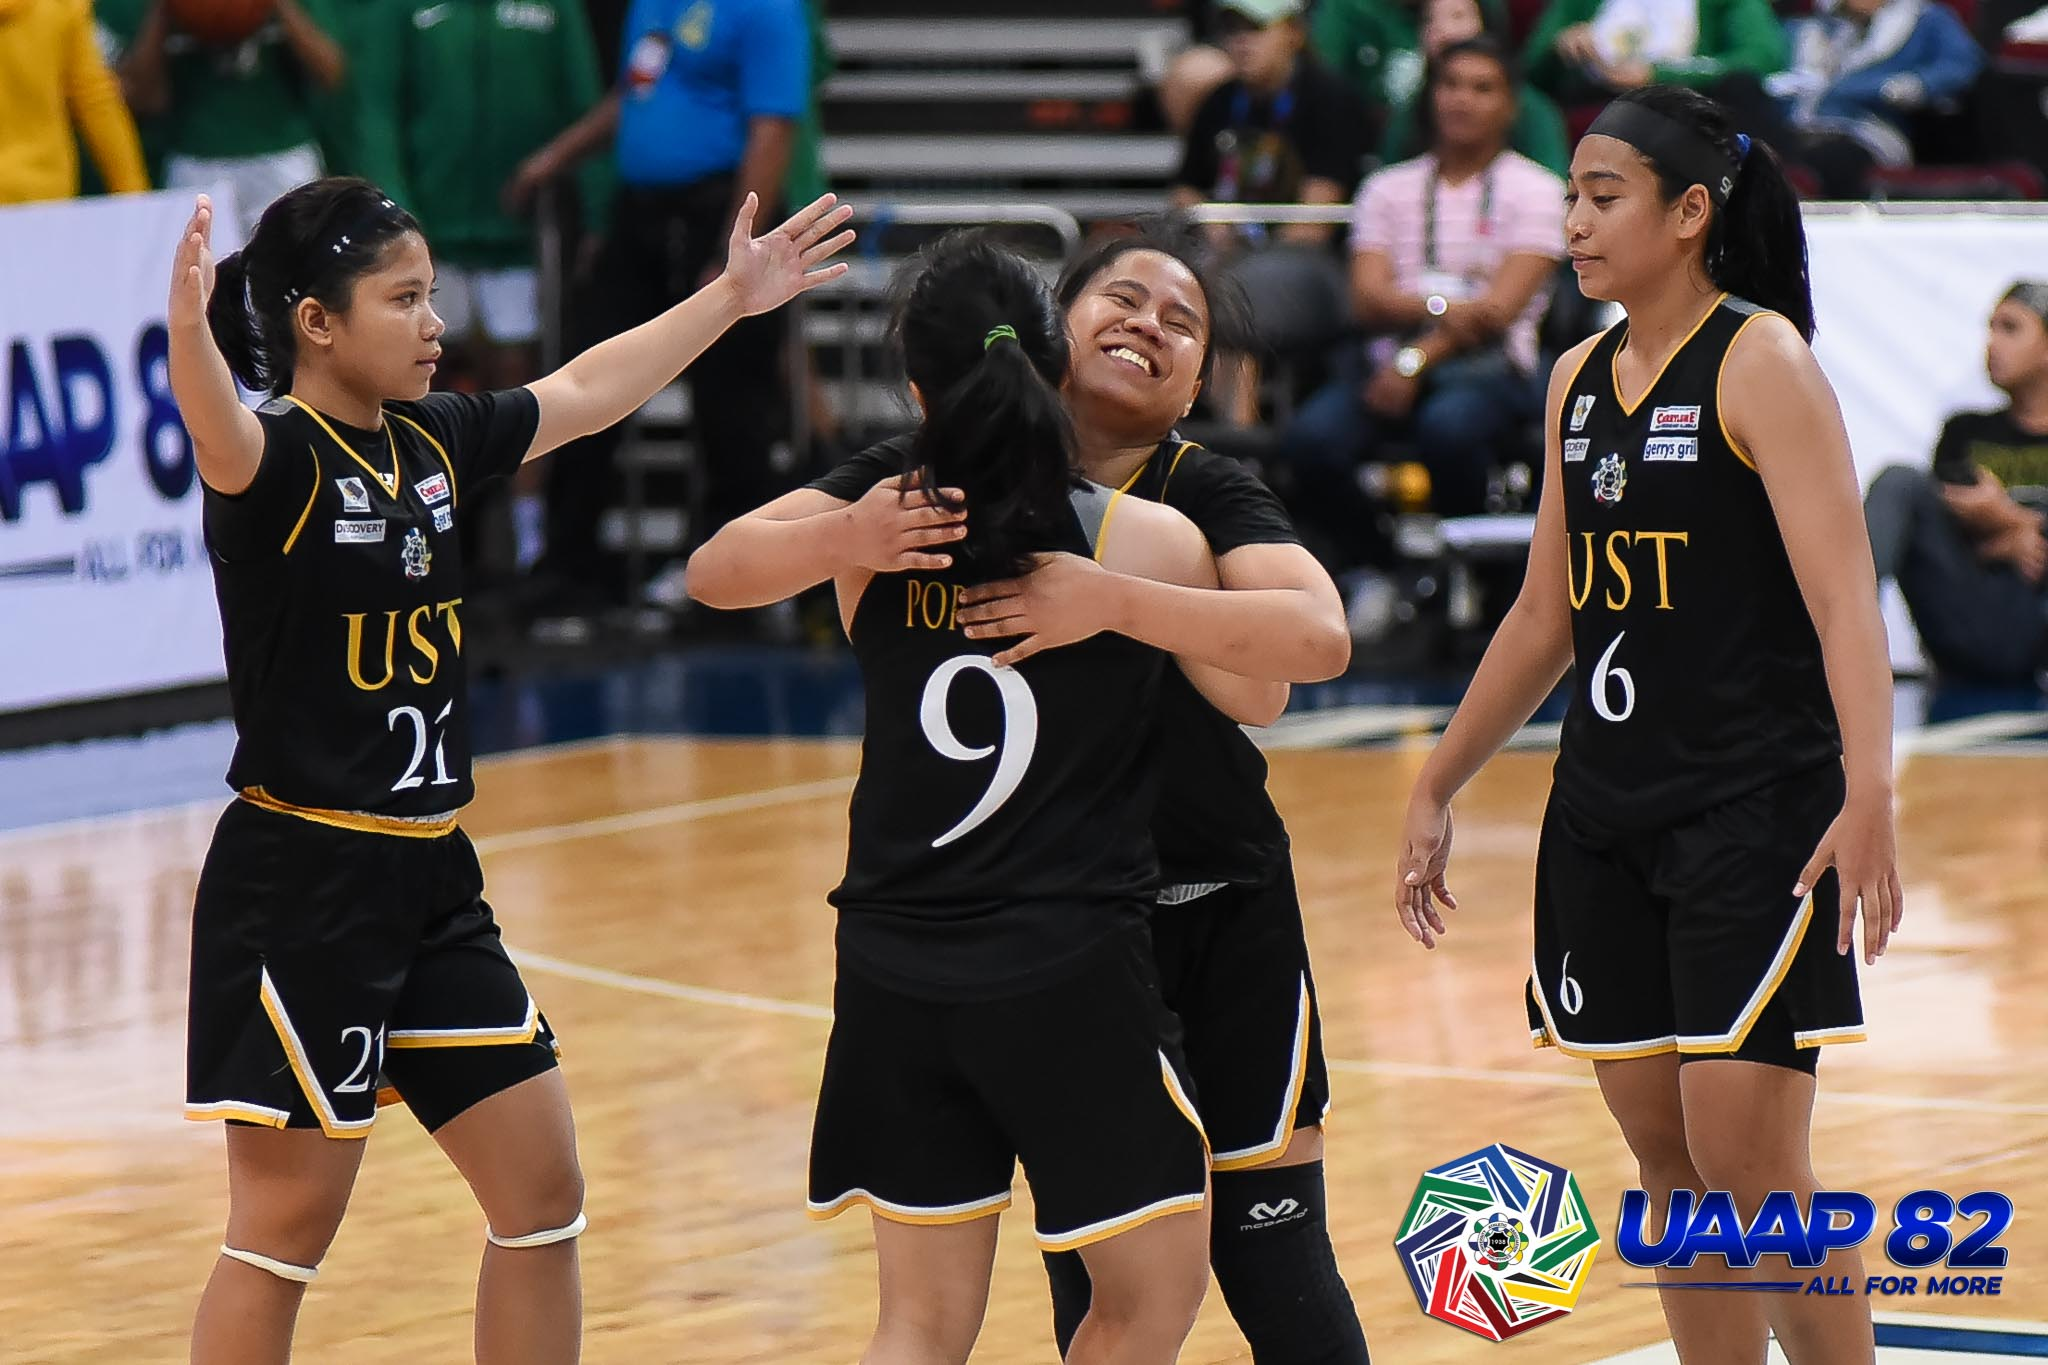 Tiebreaker Times Tacky Tacatac steps up as UST picks up pivotal win over FEU Basketball FEU News UAAP UST  Valerie Mamaril UST Women's Basketball UAAP Season 82 Women's Basketball UAAP Season 82 Ruby Portillo Haydee Ong Grace Irebu FEU Women's Basketball Clare Castro Blanche Bahuyan Bert Flores Ana Tacatac